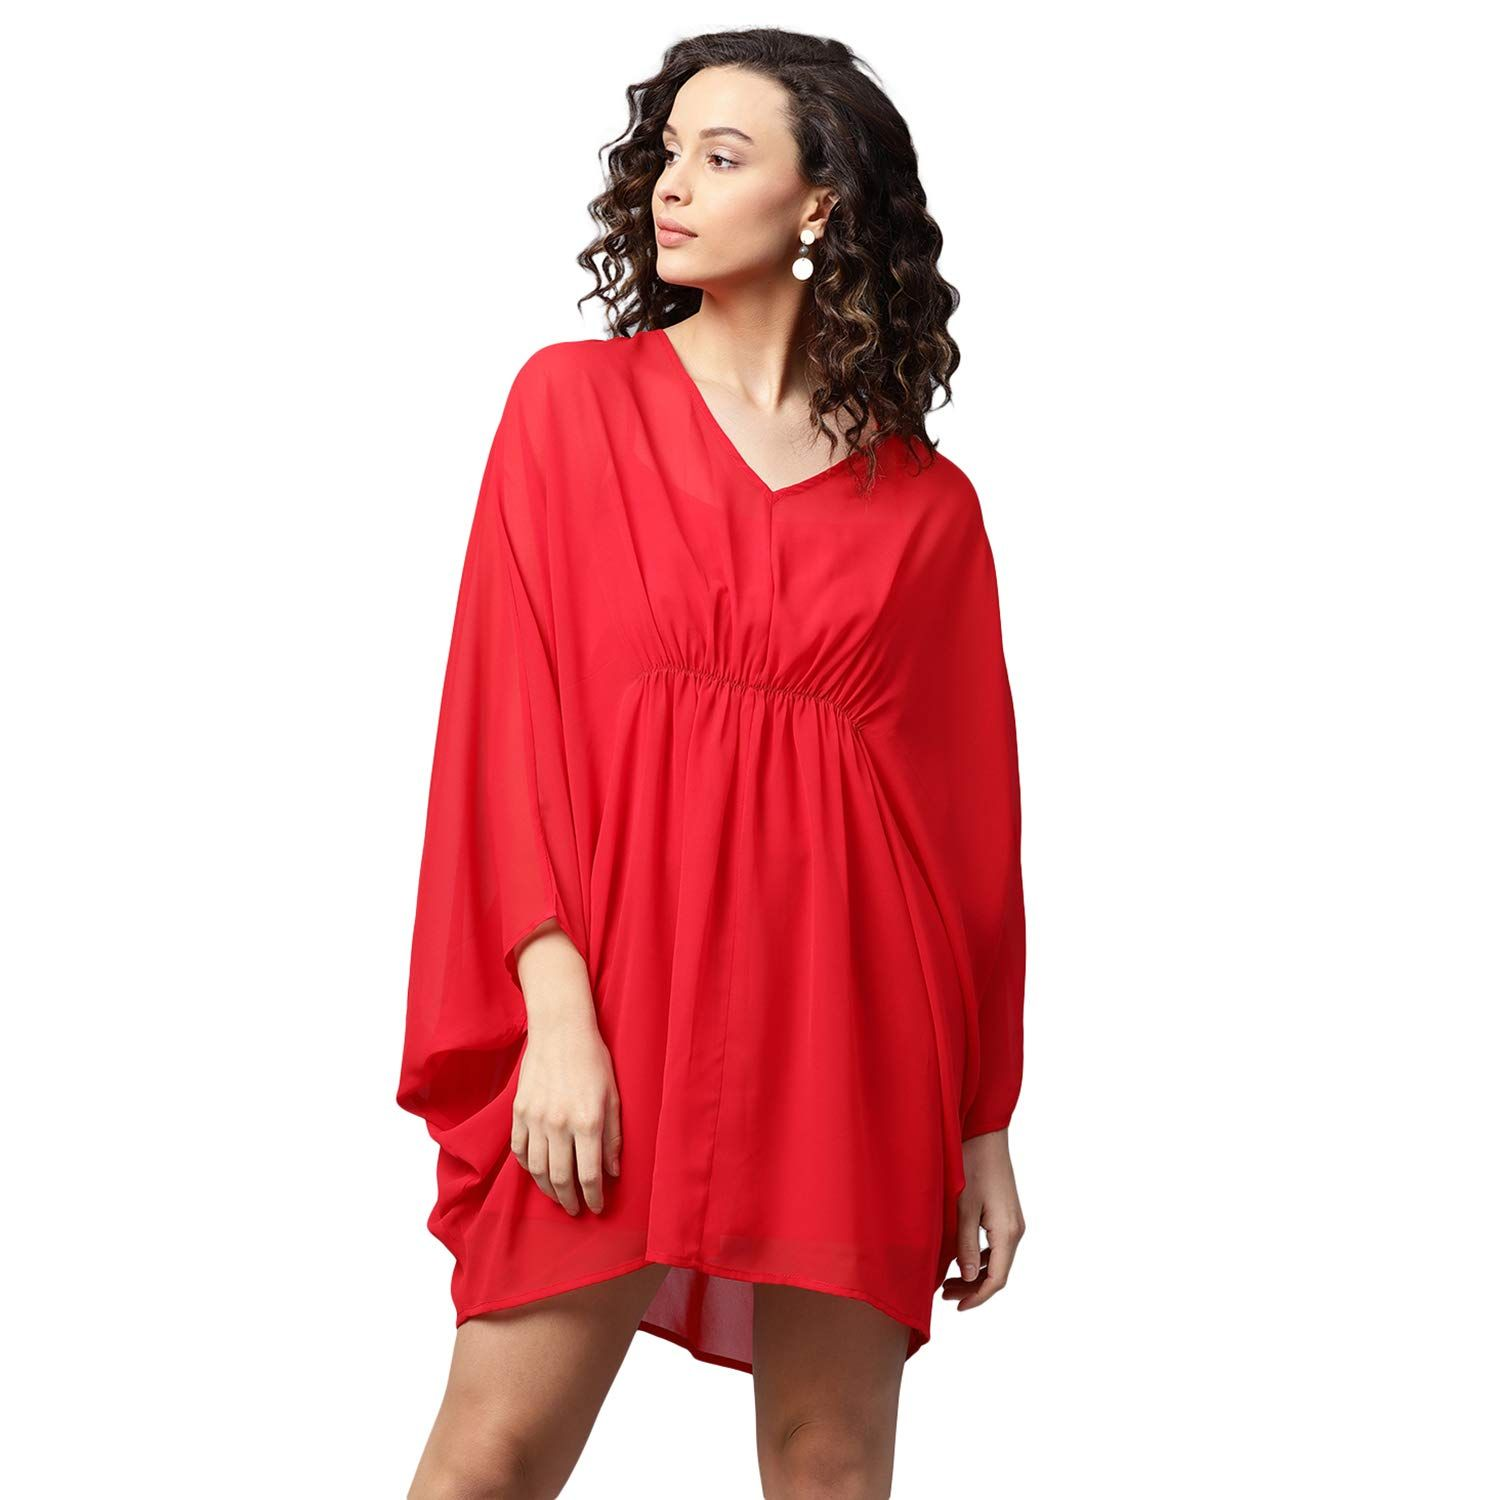 d61c328882d FEMELLA Women s Red Front Gathered Mini Dress